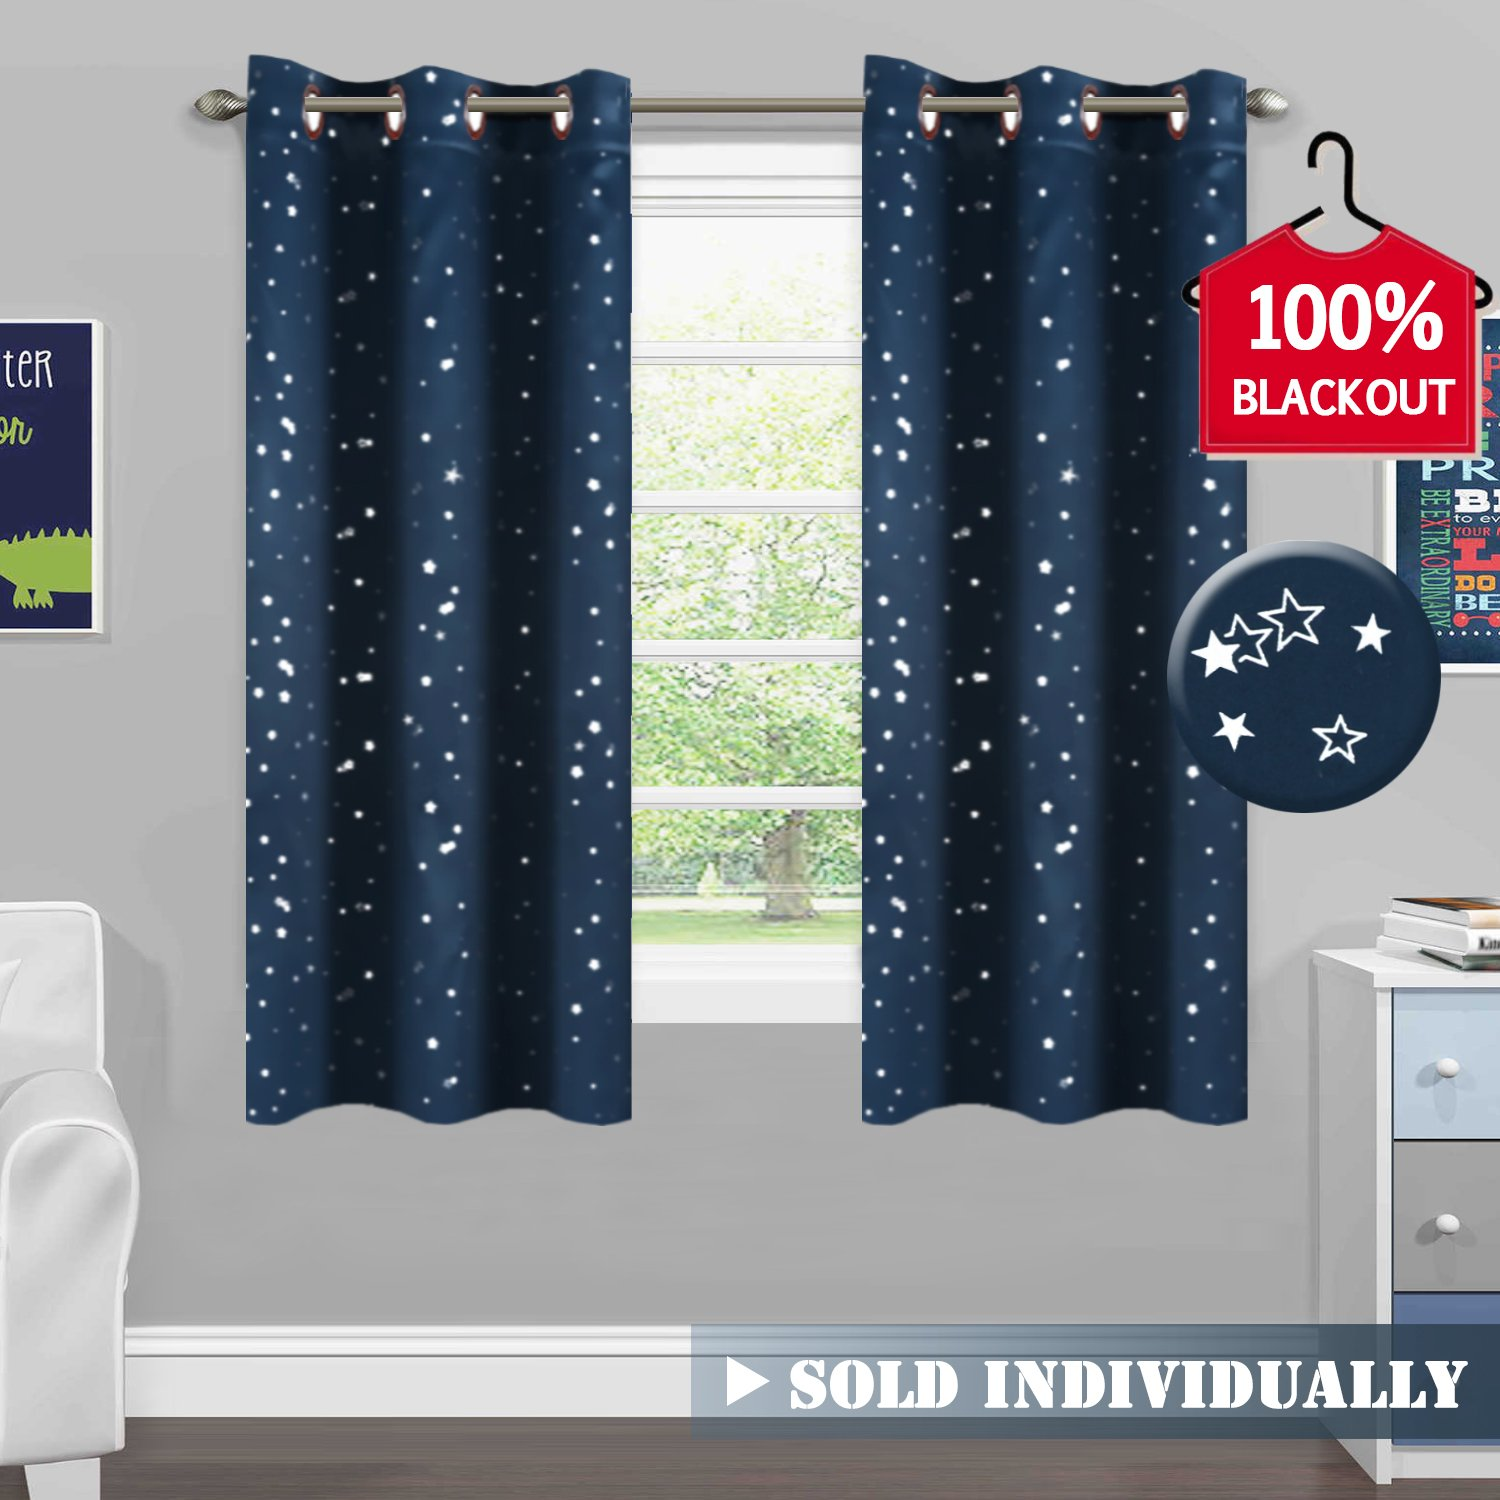 H.VERSAILTEX 100% Blackout Curtain Thermal Insulated Navy Stars Kids Room Curtain Panels Antique Grommet Window Treatments for Short Window